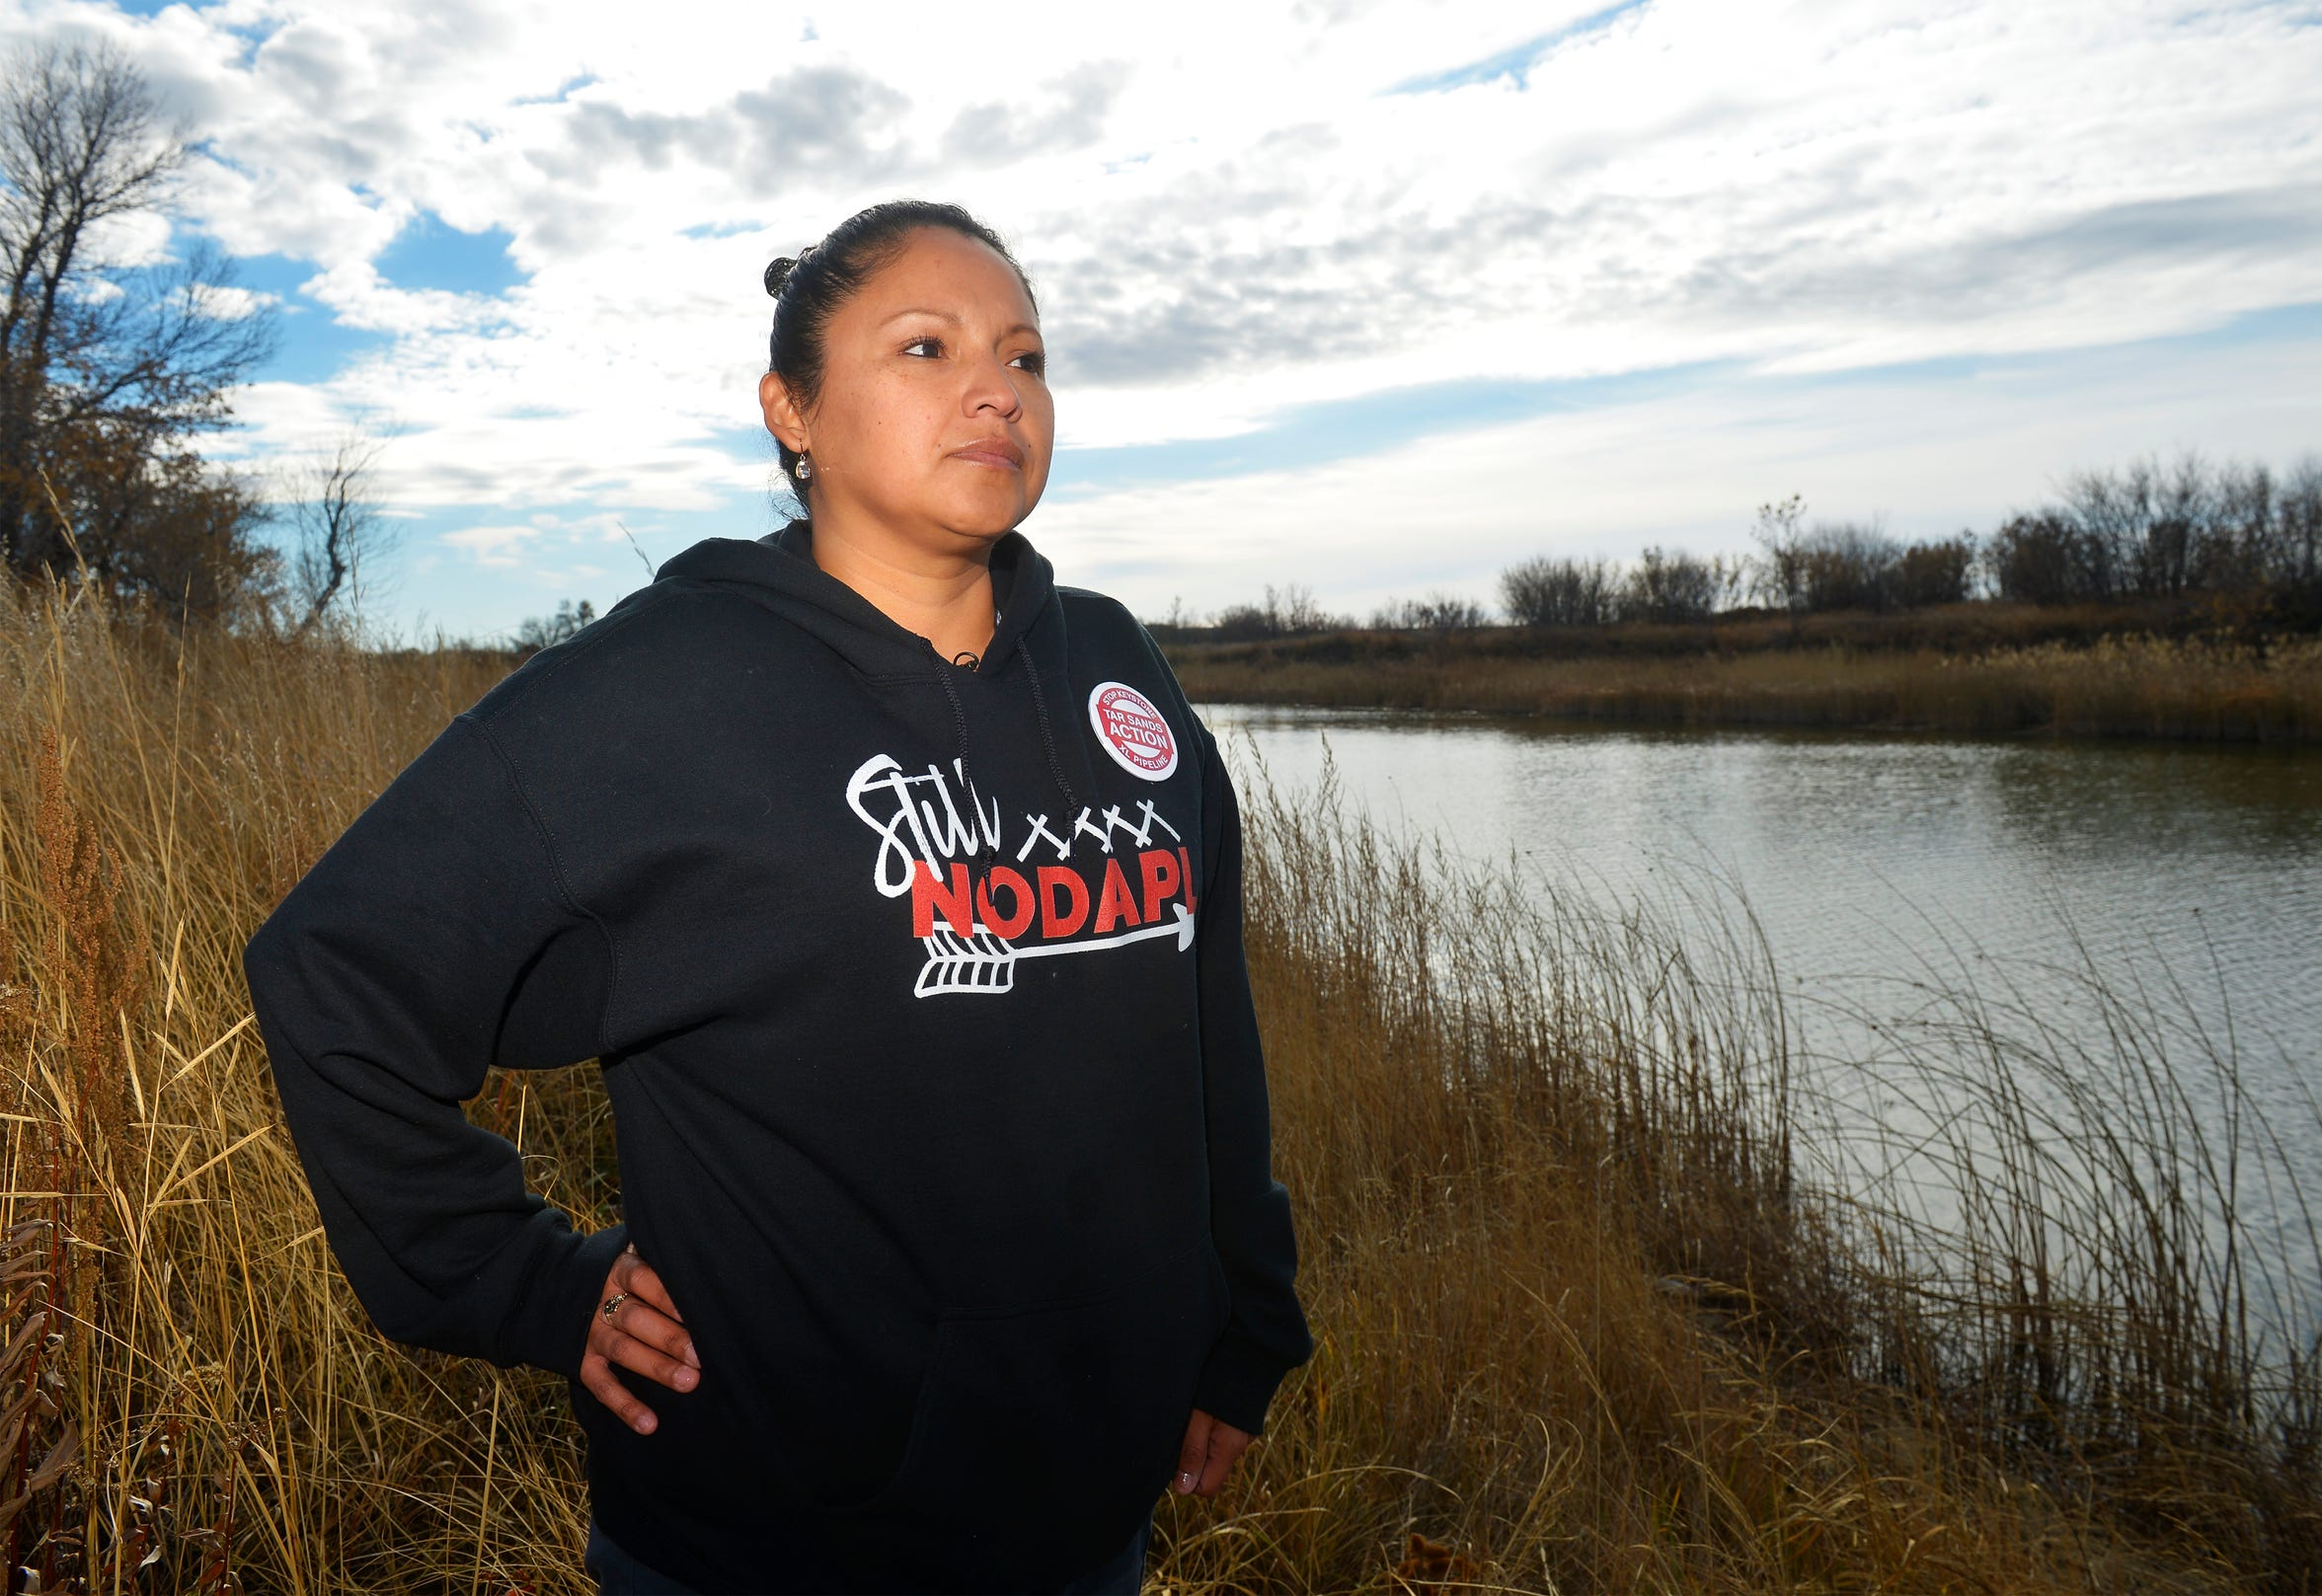 Marina Starr of Poplar, Mont., is protesting construction of the Keystone XL Pipeline across the Missouri River due to concerns of contamination from leaks in the pipeline.